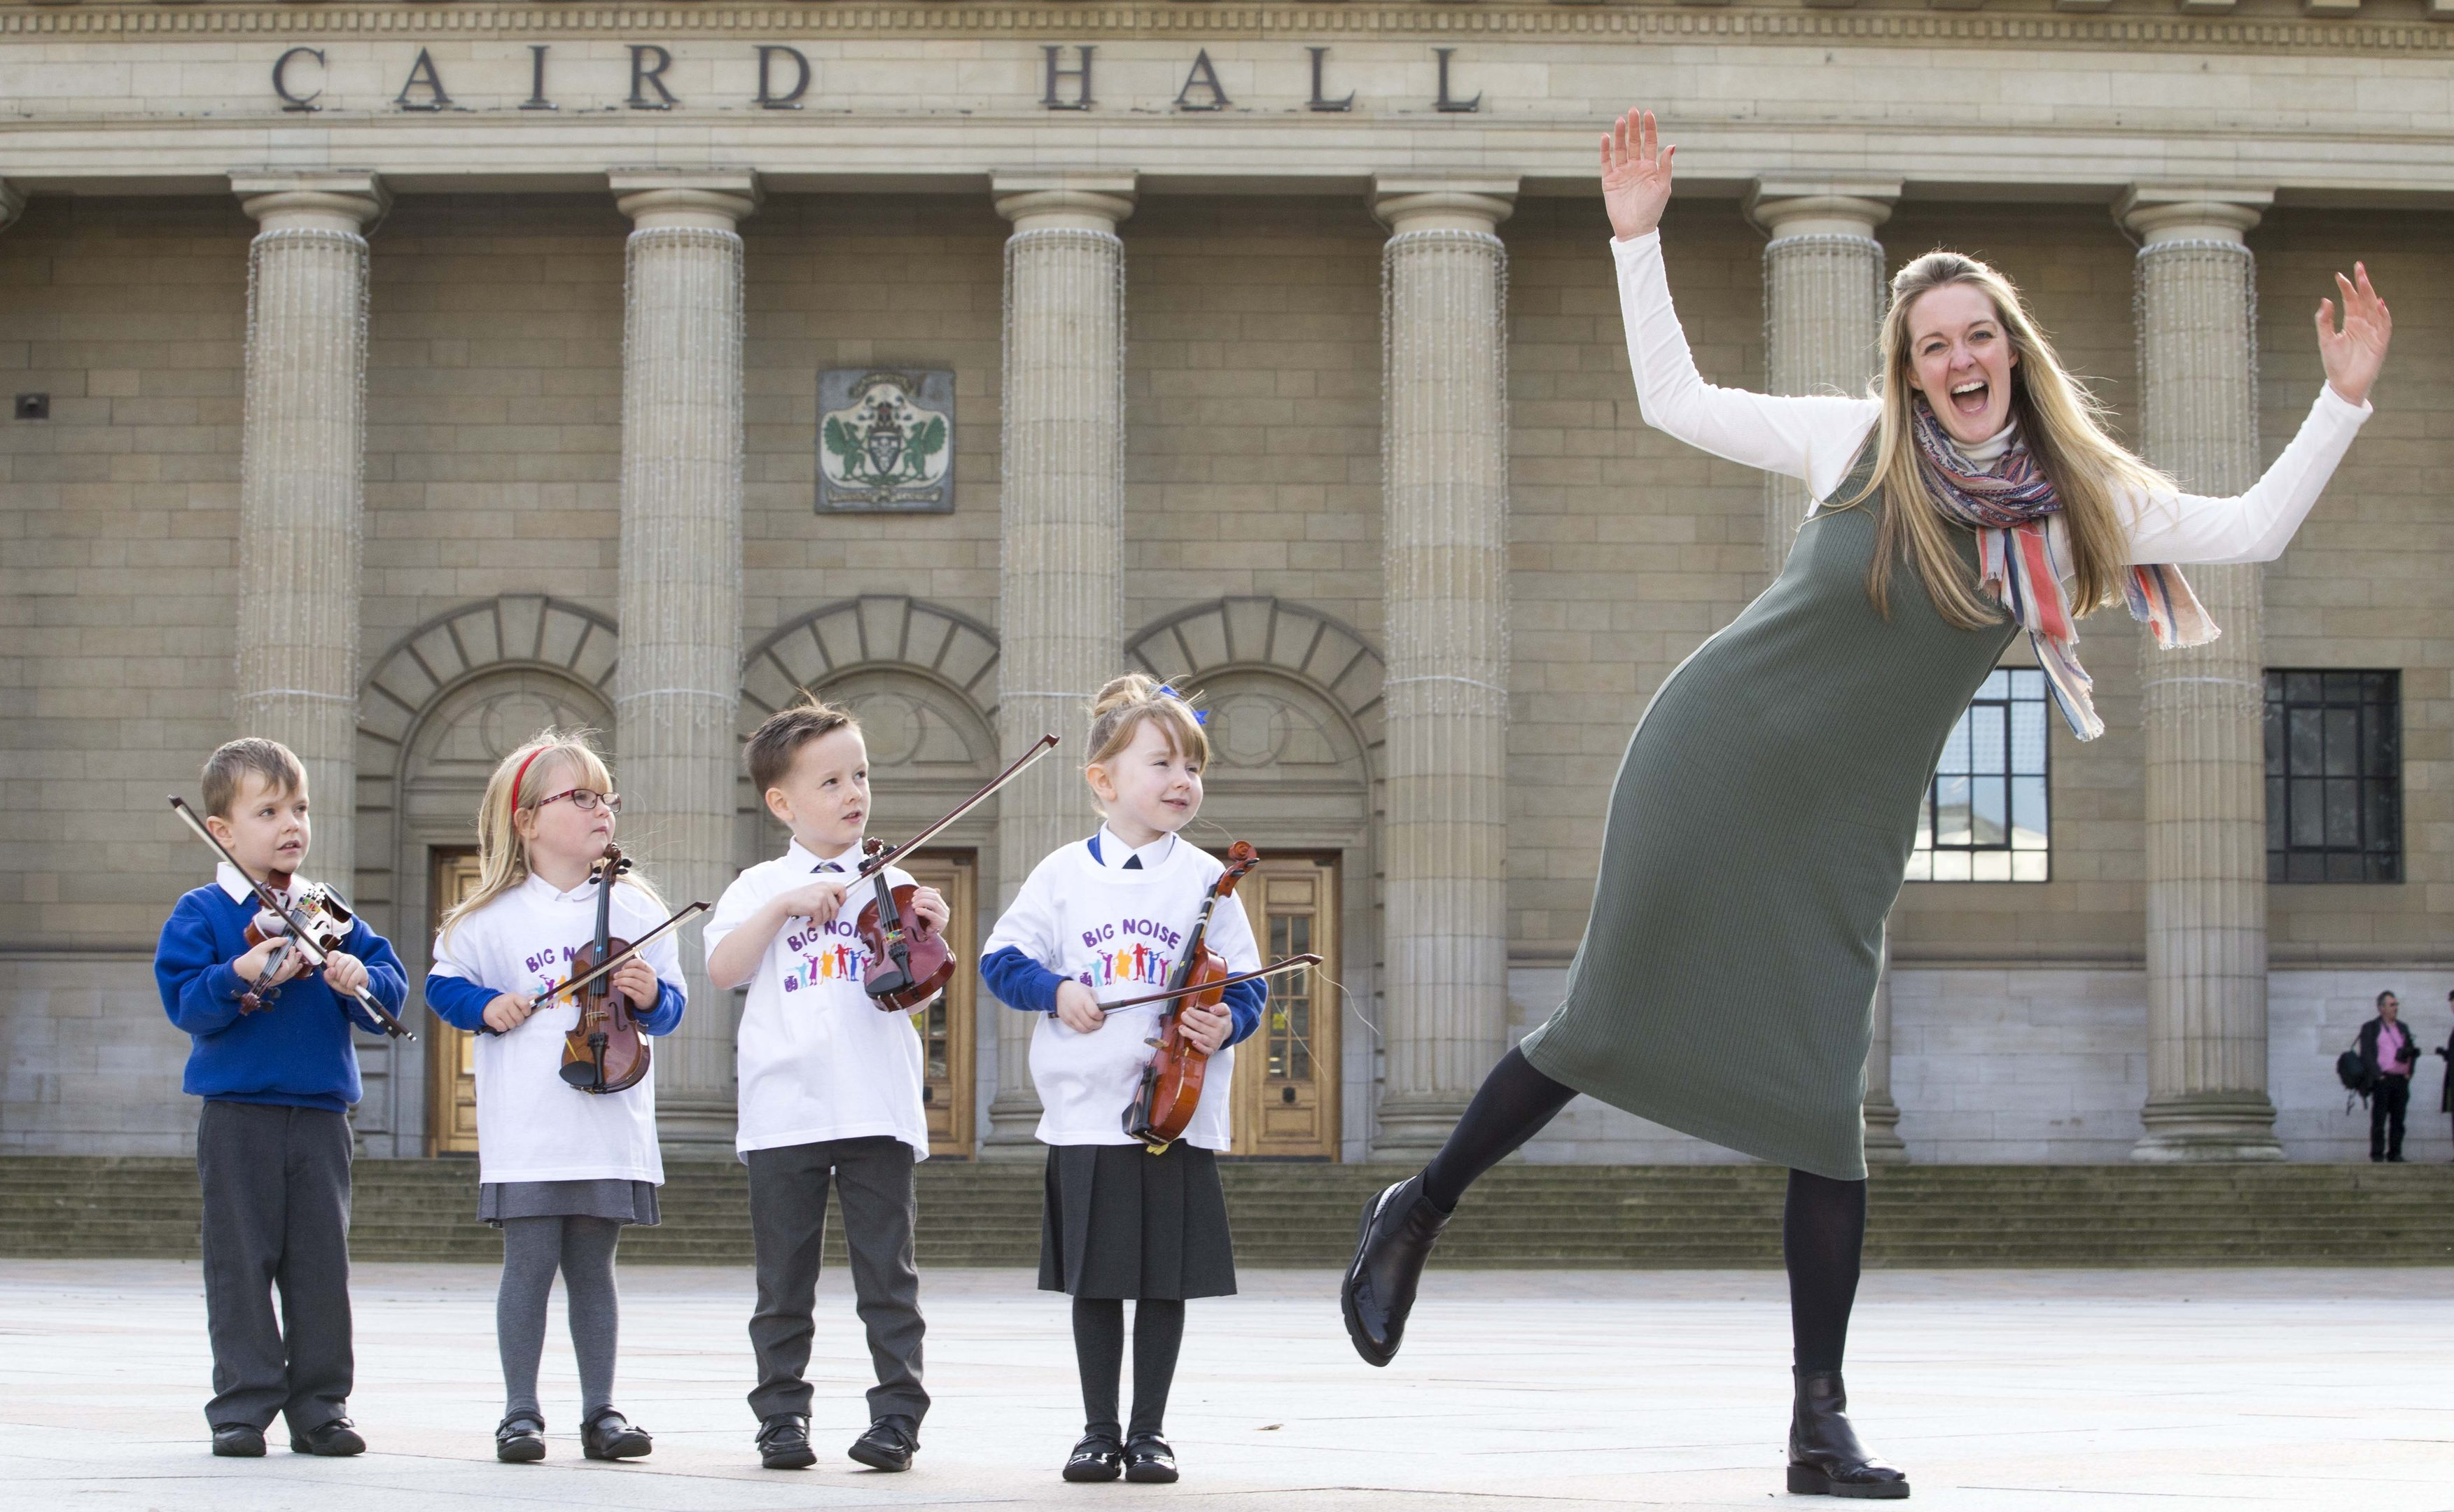 The launch of Big Noise Douglas took a major forward in May with the signing of the official partnership agreement between Sistema Scotland, Optimistic Sound and Dundee City Council.  Ryan Mackenzie, Bella Riddell, Rhylee Traynor and Caitlyn Bertie are pictured with Sistema Scotland chief executive Nicola Killean